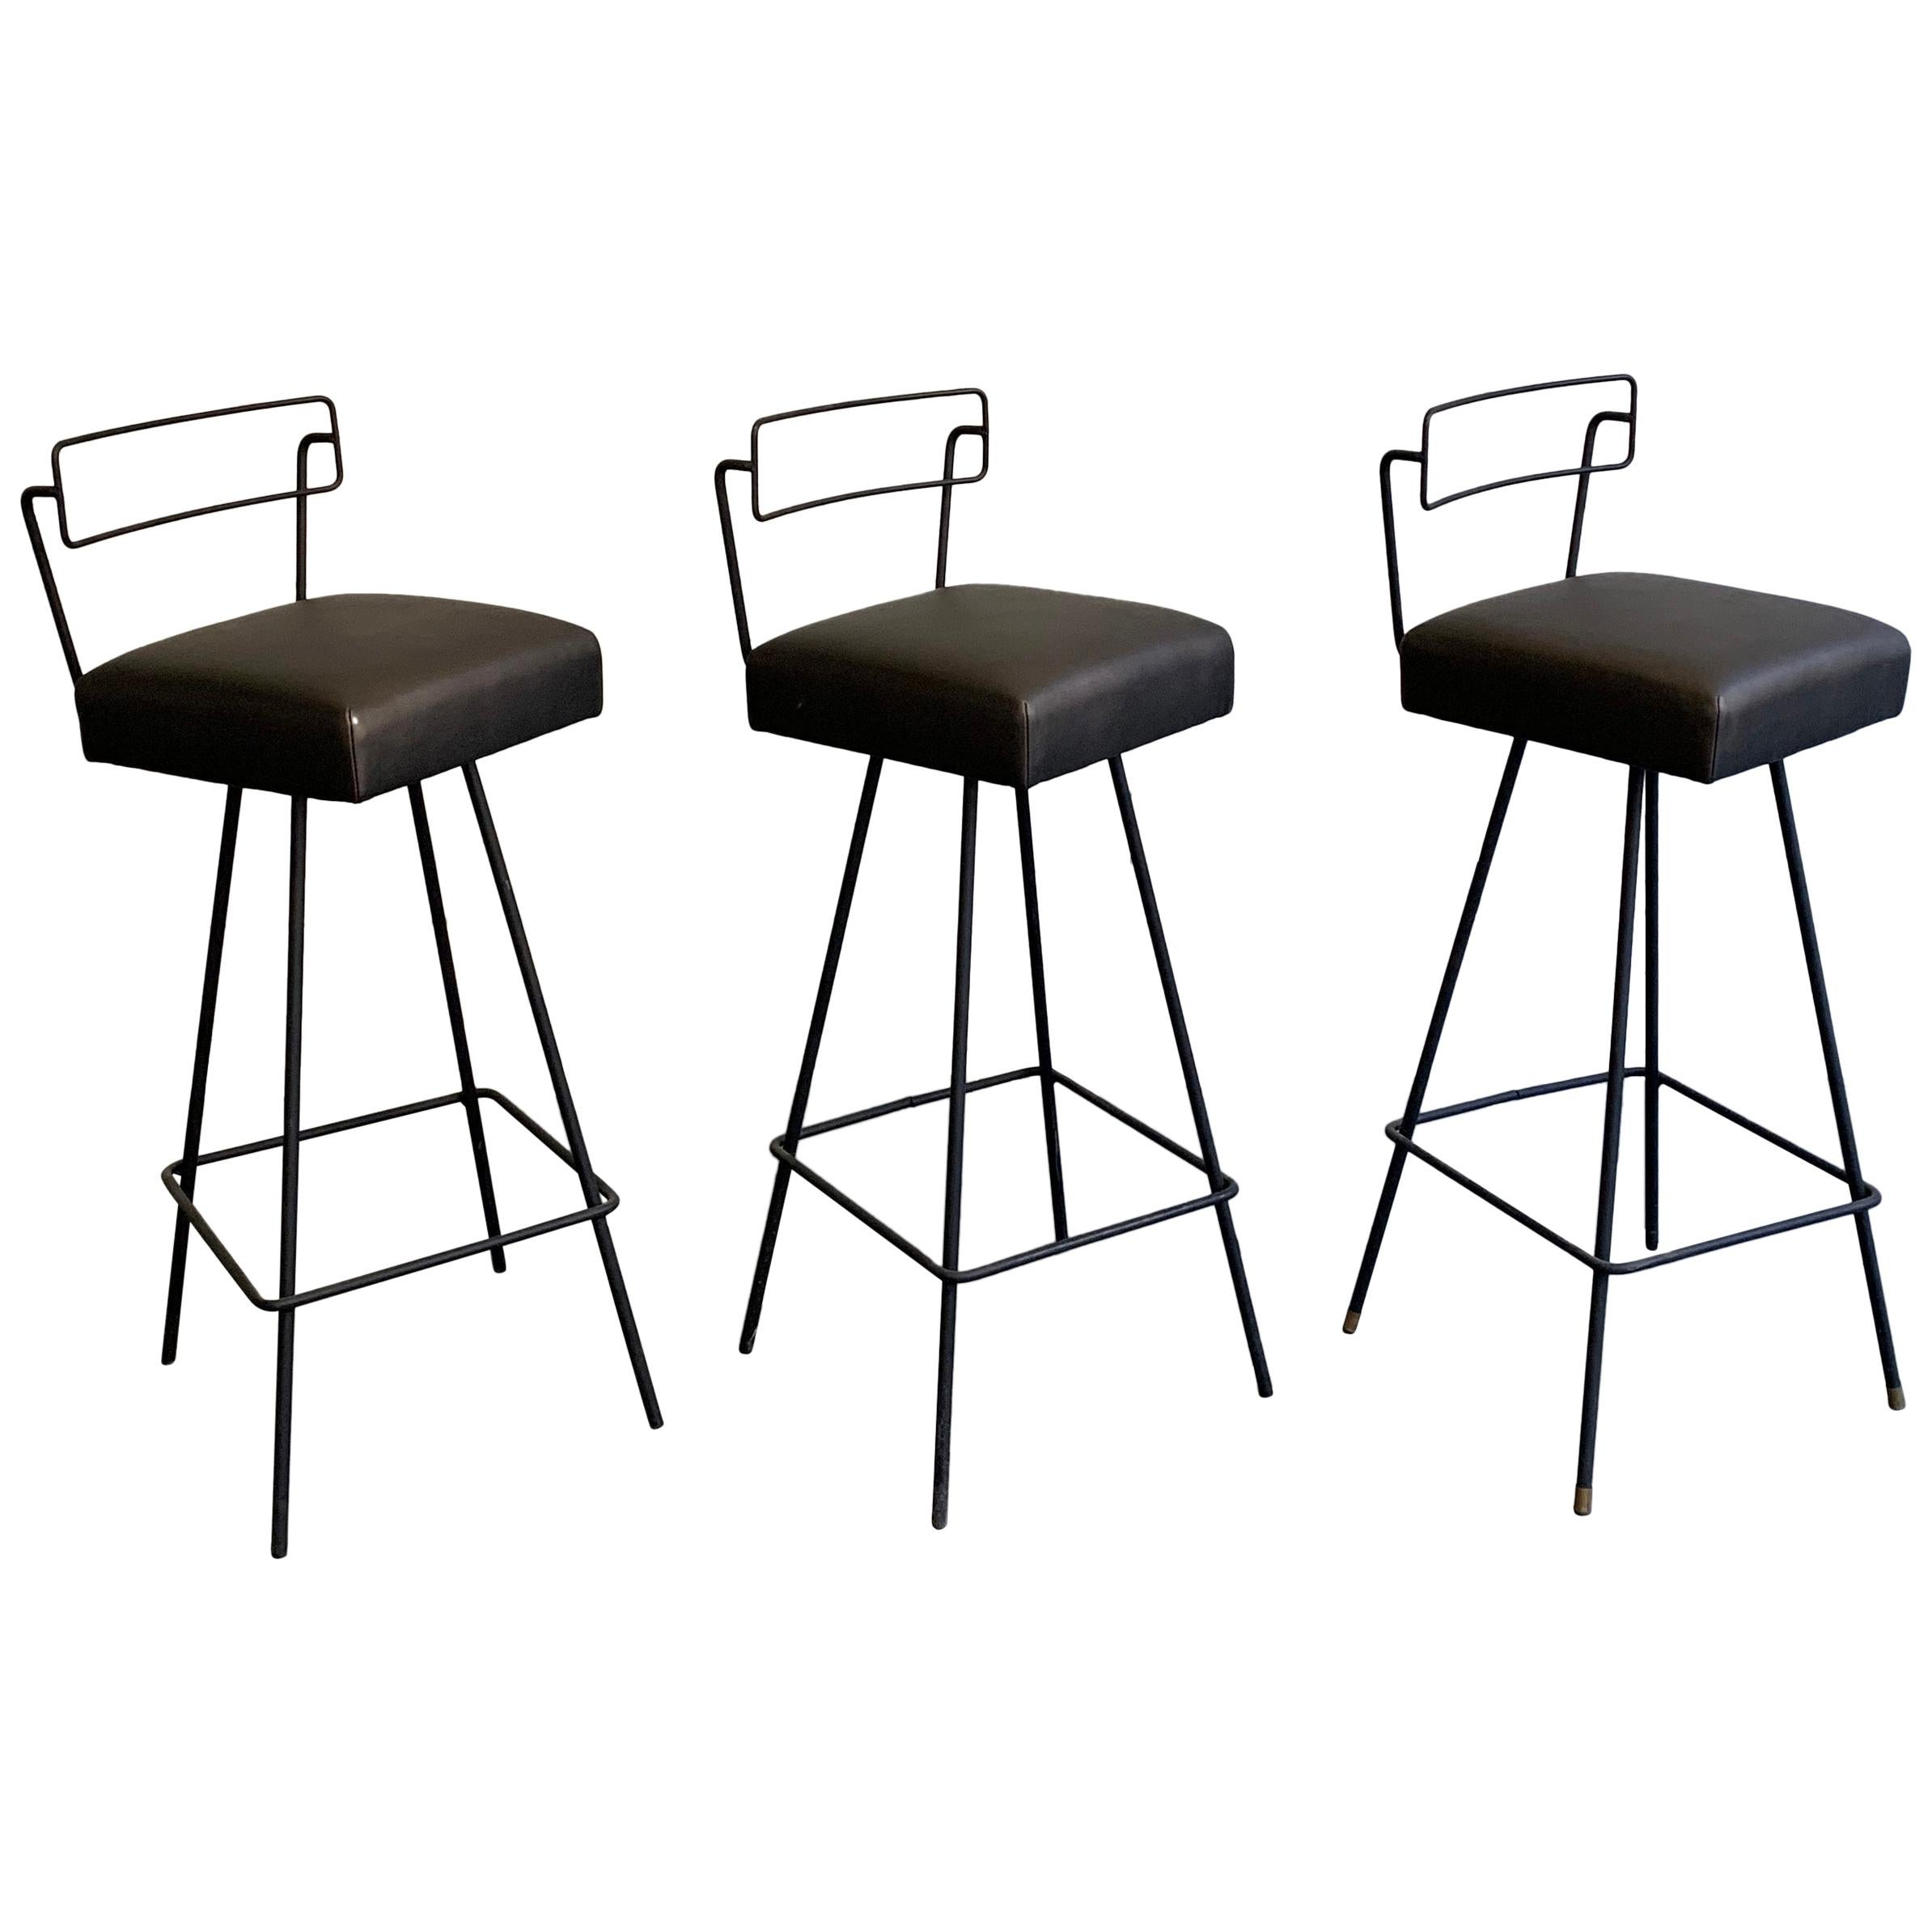 Pleasing Iron Bar Stools 168 For Sale On 1Stdibs Unemploymentrelief Wooden Chair Designs For Living Room Unemploymentrelieforg